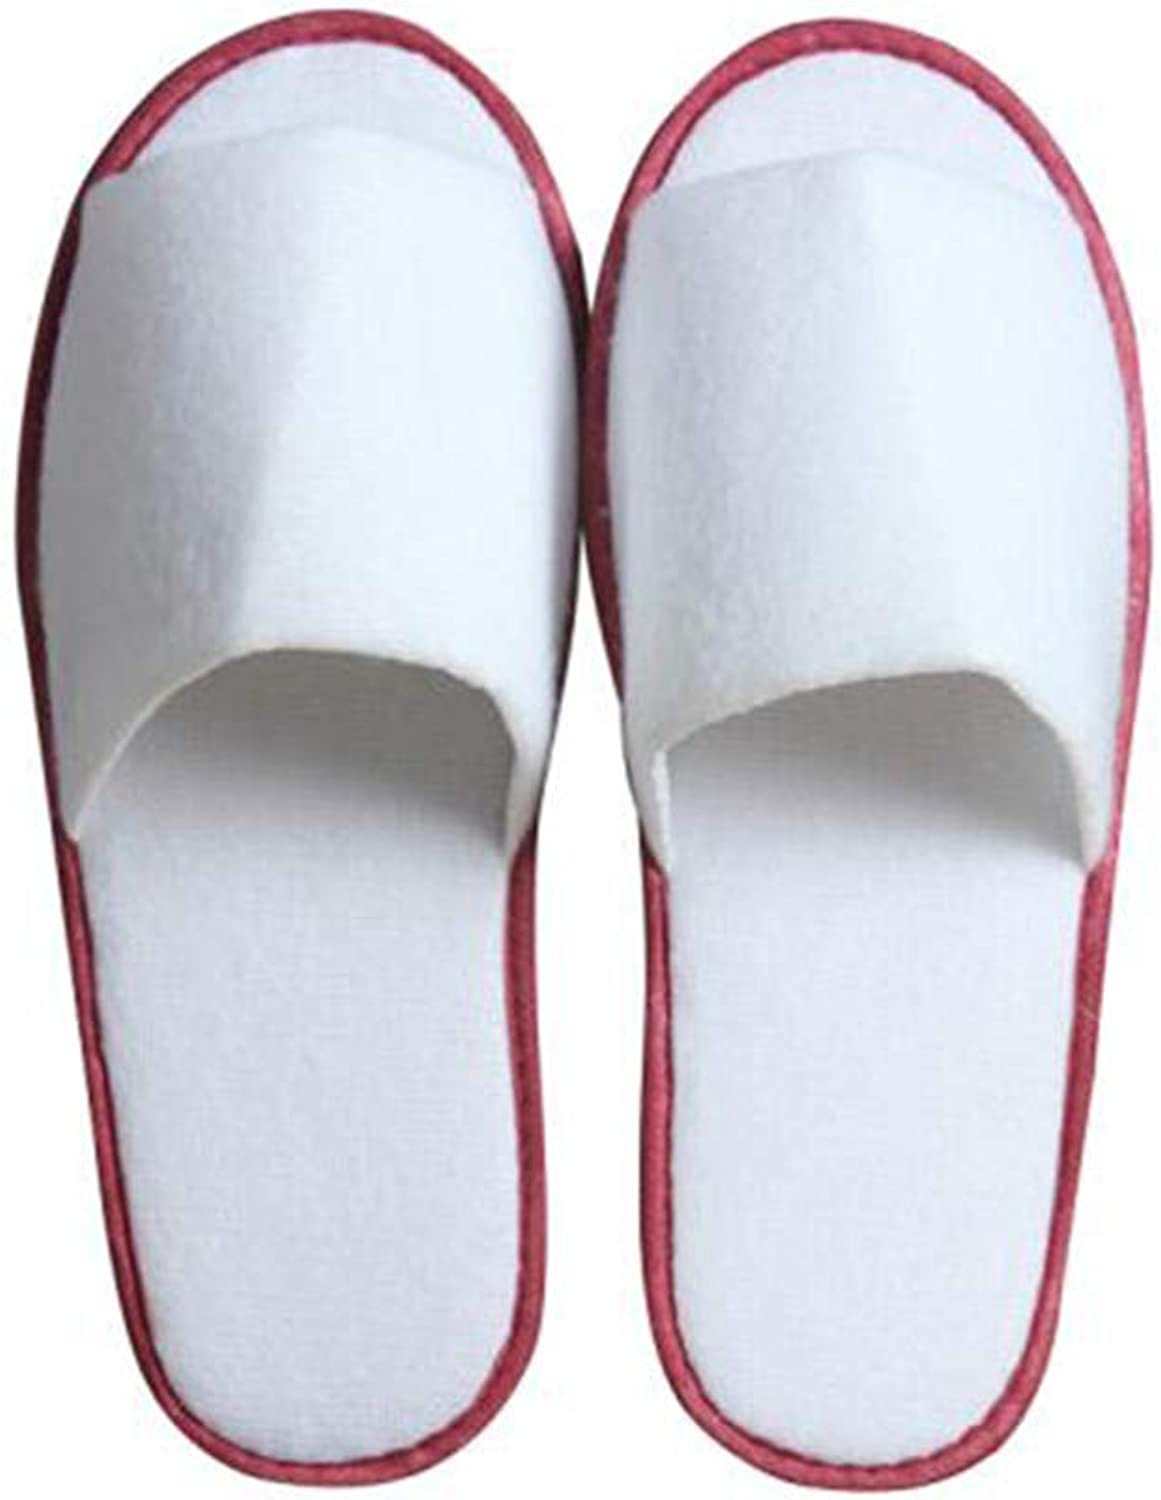 Disposable Slippers Men's Slippers Women's Household Slippers Five-star Hotel Hotel Sauna Room Club Beauty Unisex Slippers 28.5  10.6cm (color   Red side 20 pairs, Size   285  106  5mm)